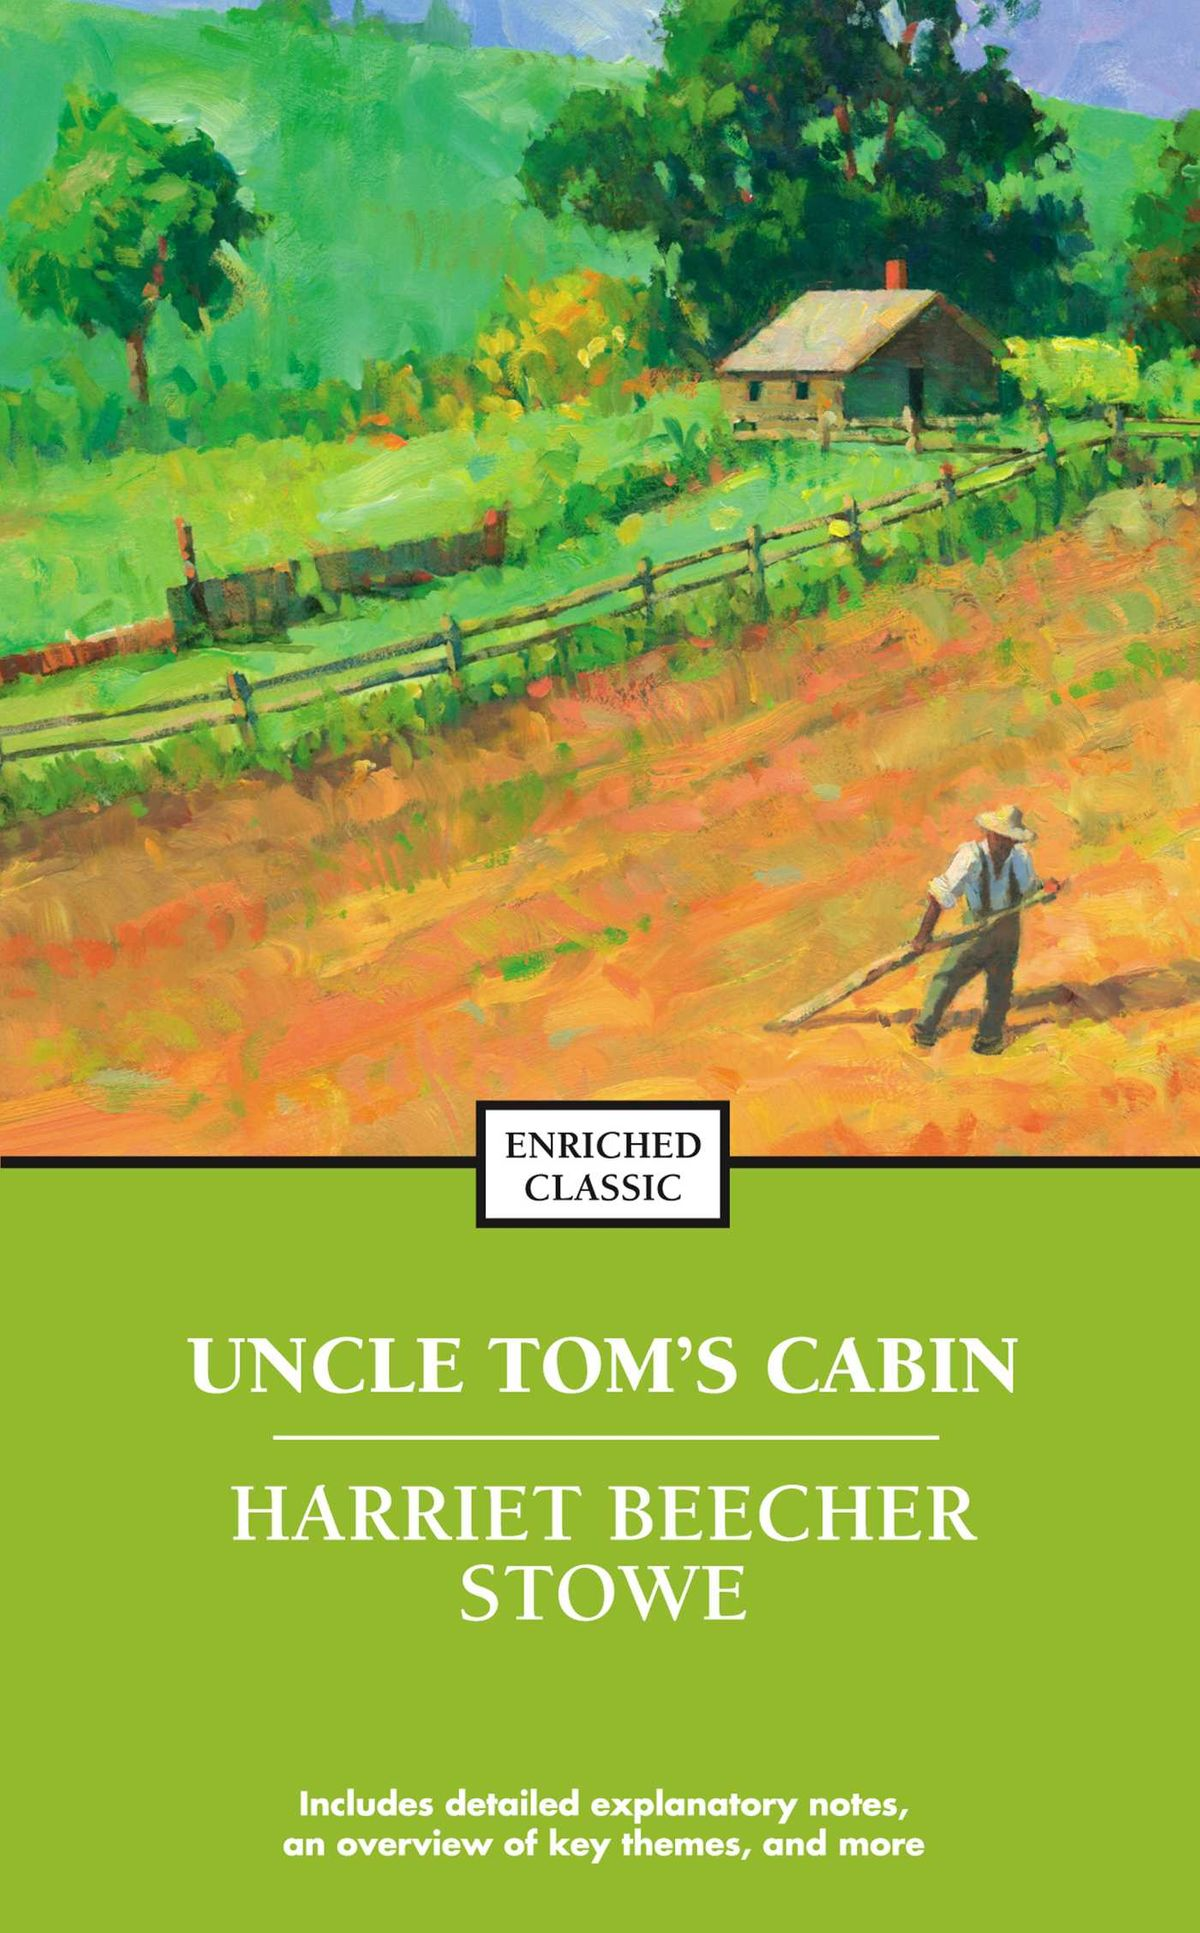 uncle tom's cabin synopsis Uncle tom's cabin (1987) this adaptation of the harriet beecher stowe novel follows the adventures of a group of slaves in the 19th-century american south when eliza (phylicia rashad) hears that she and her son will be separated despite a promise to the contrary, she flees the plantation on which.